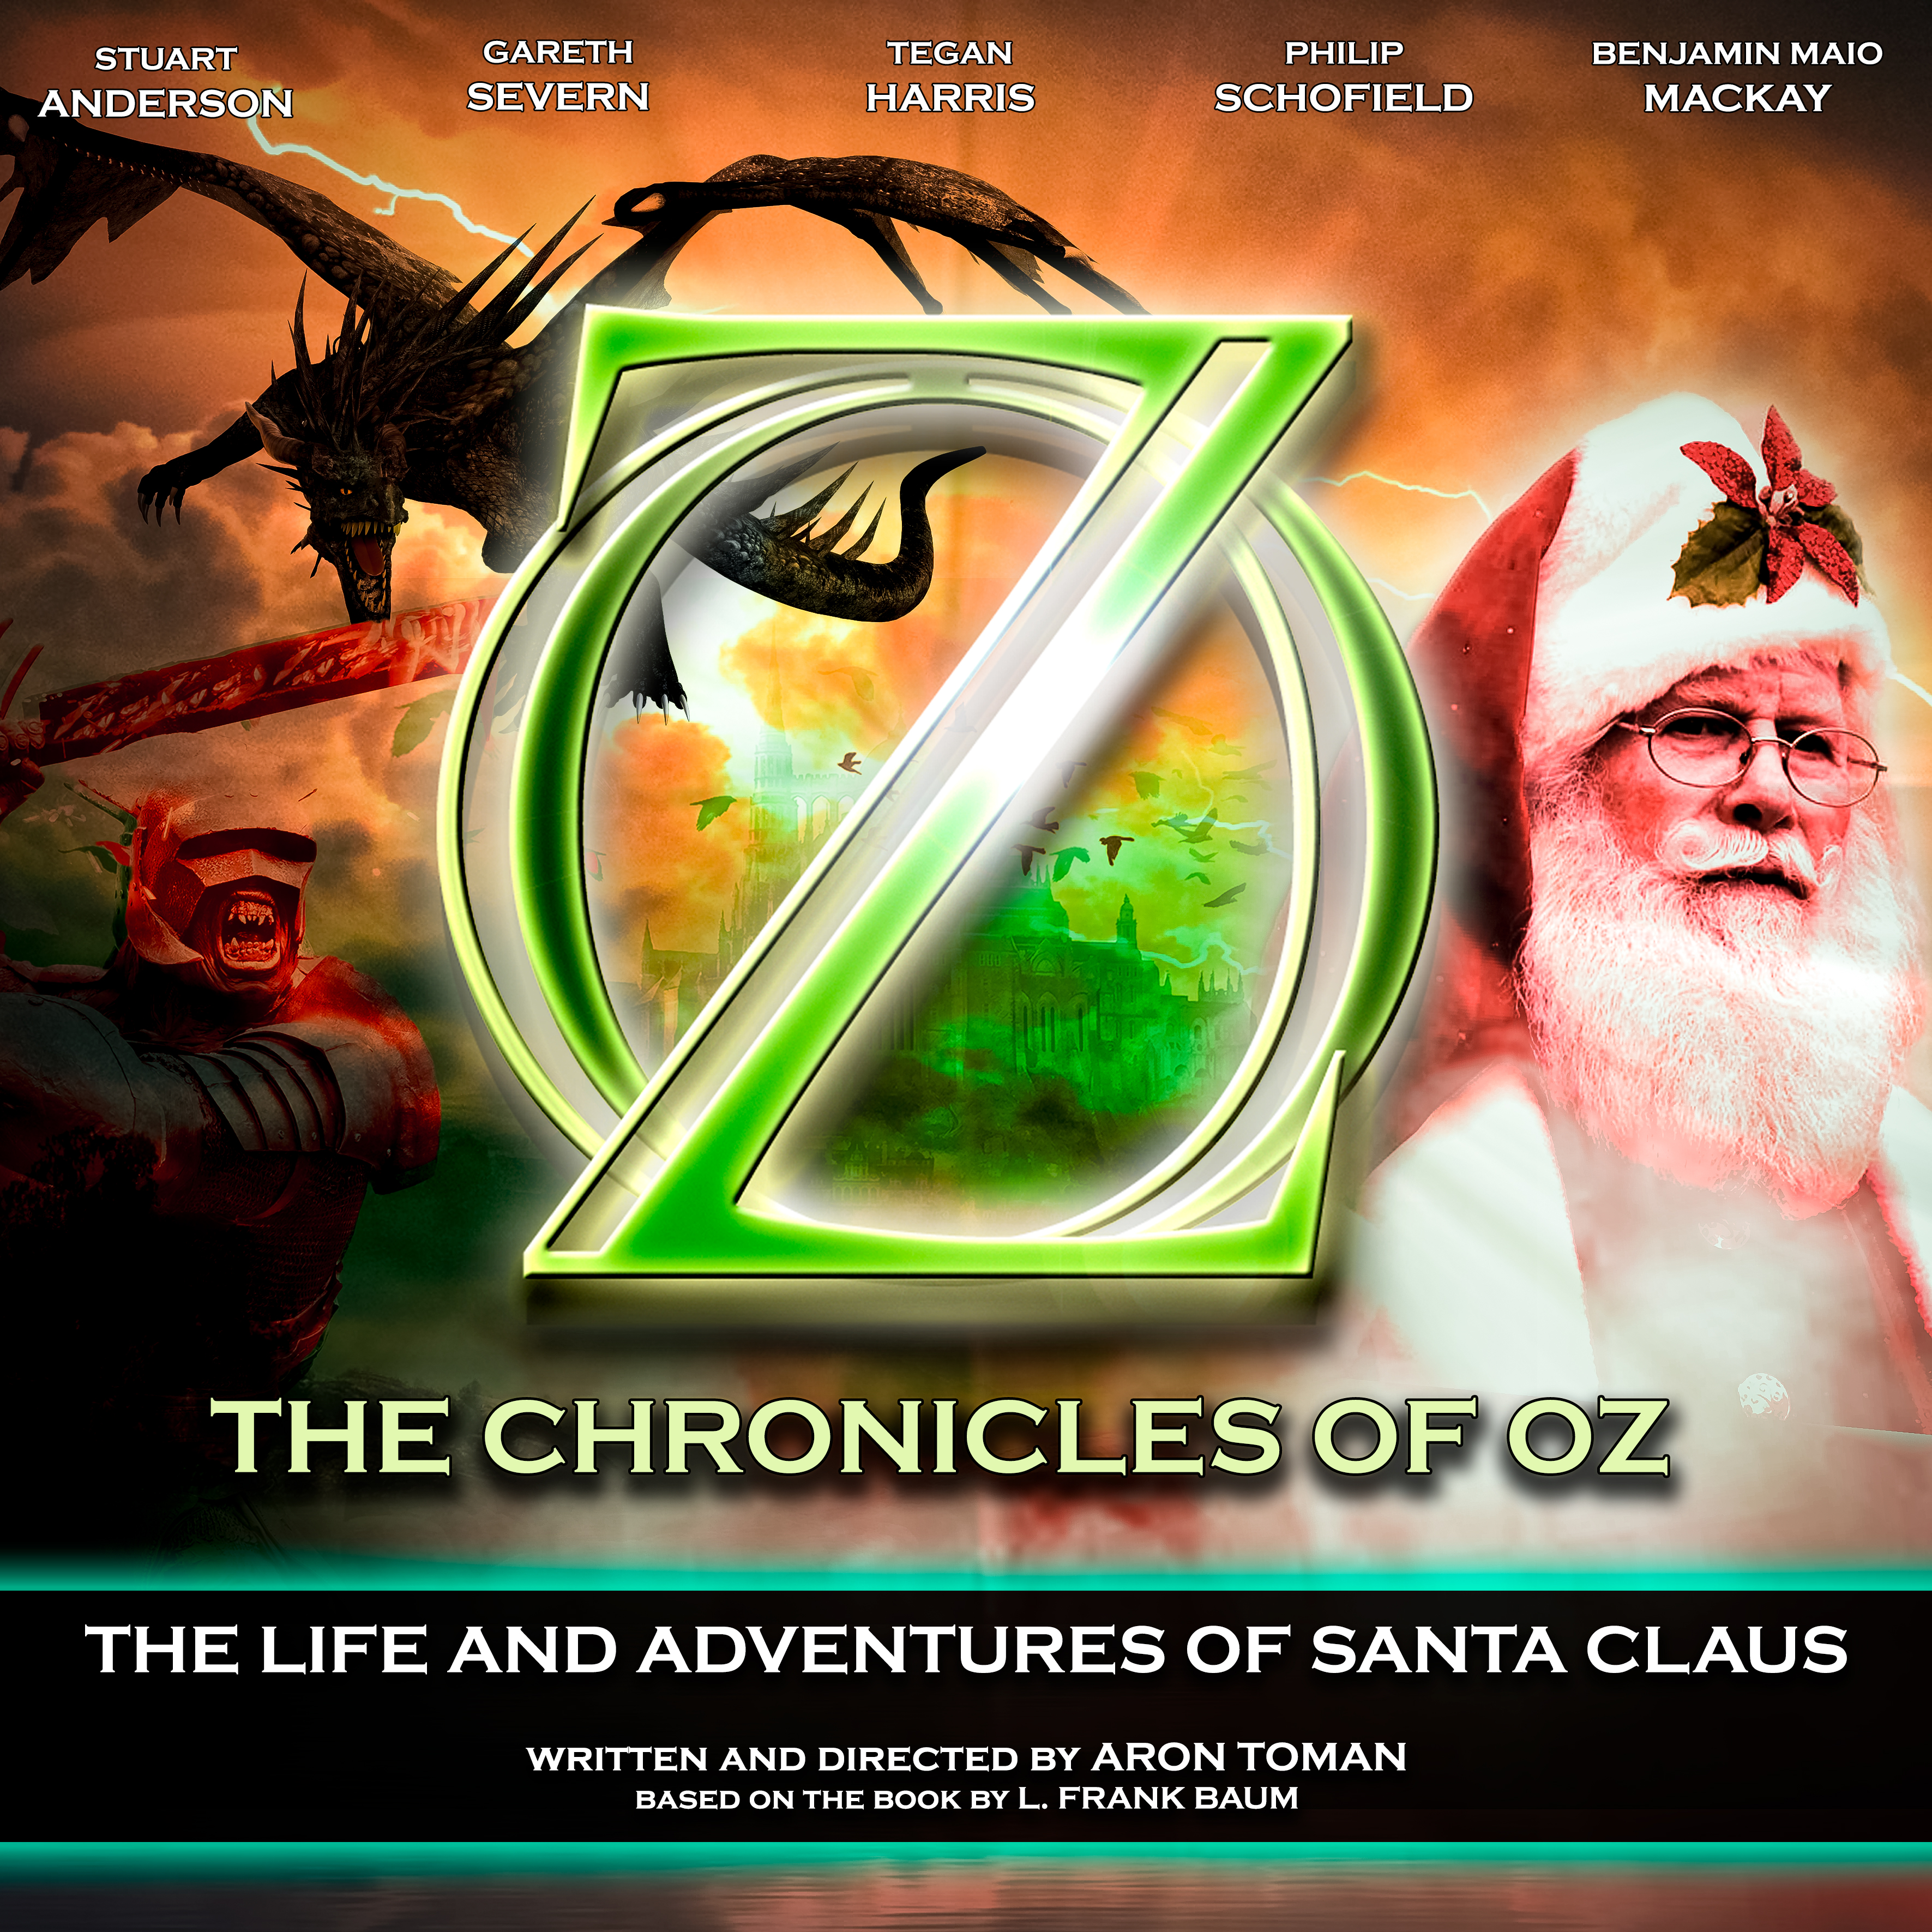 Trailer - The Life and Adventures of Santa Claus